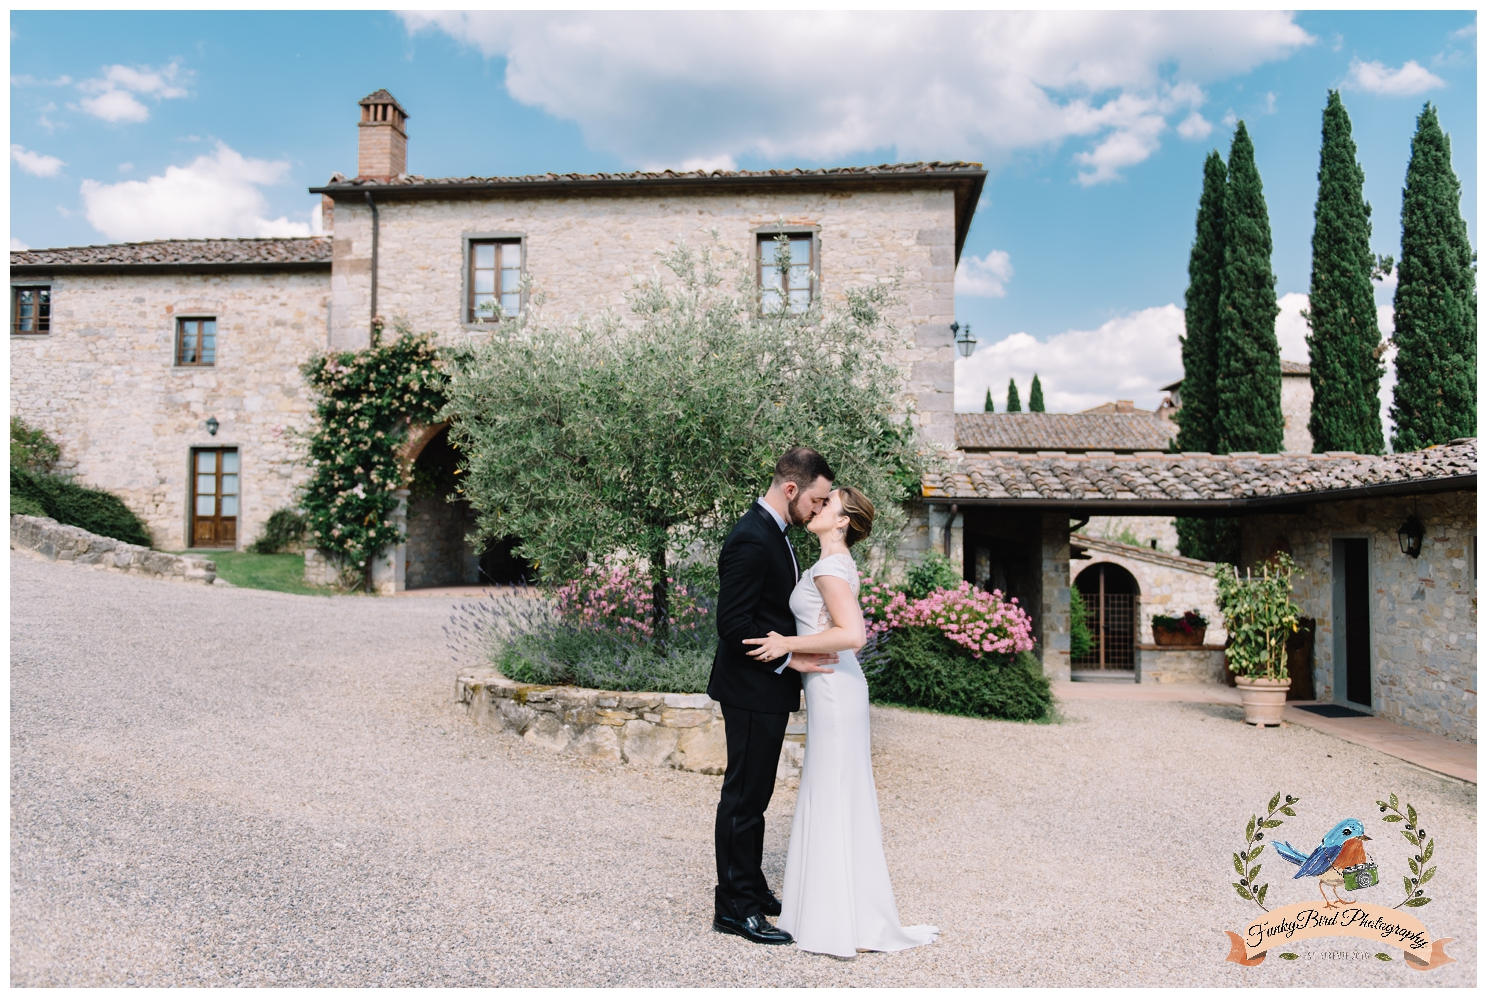 Wedding_Photographer_Tuscany_Italy_0013.jpg